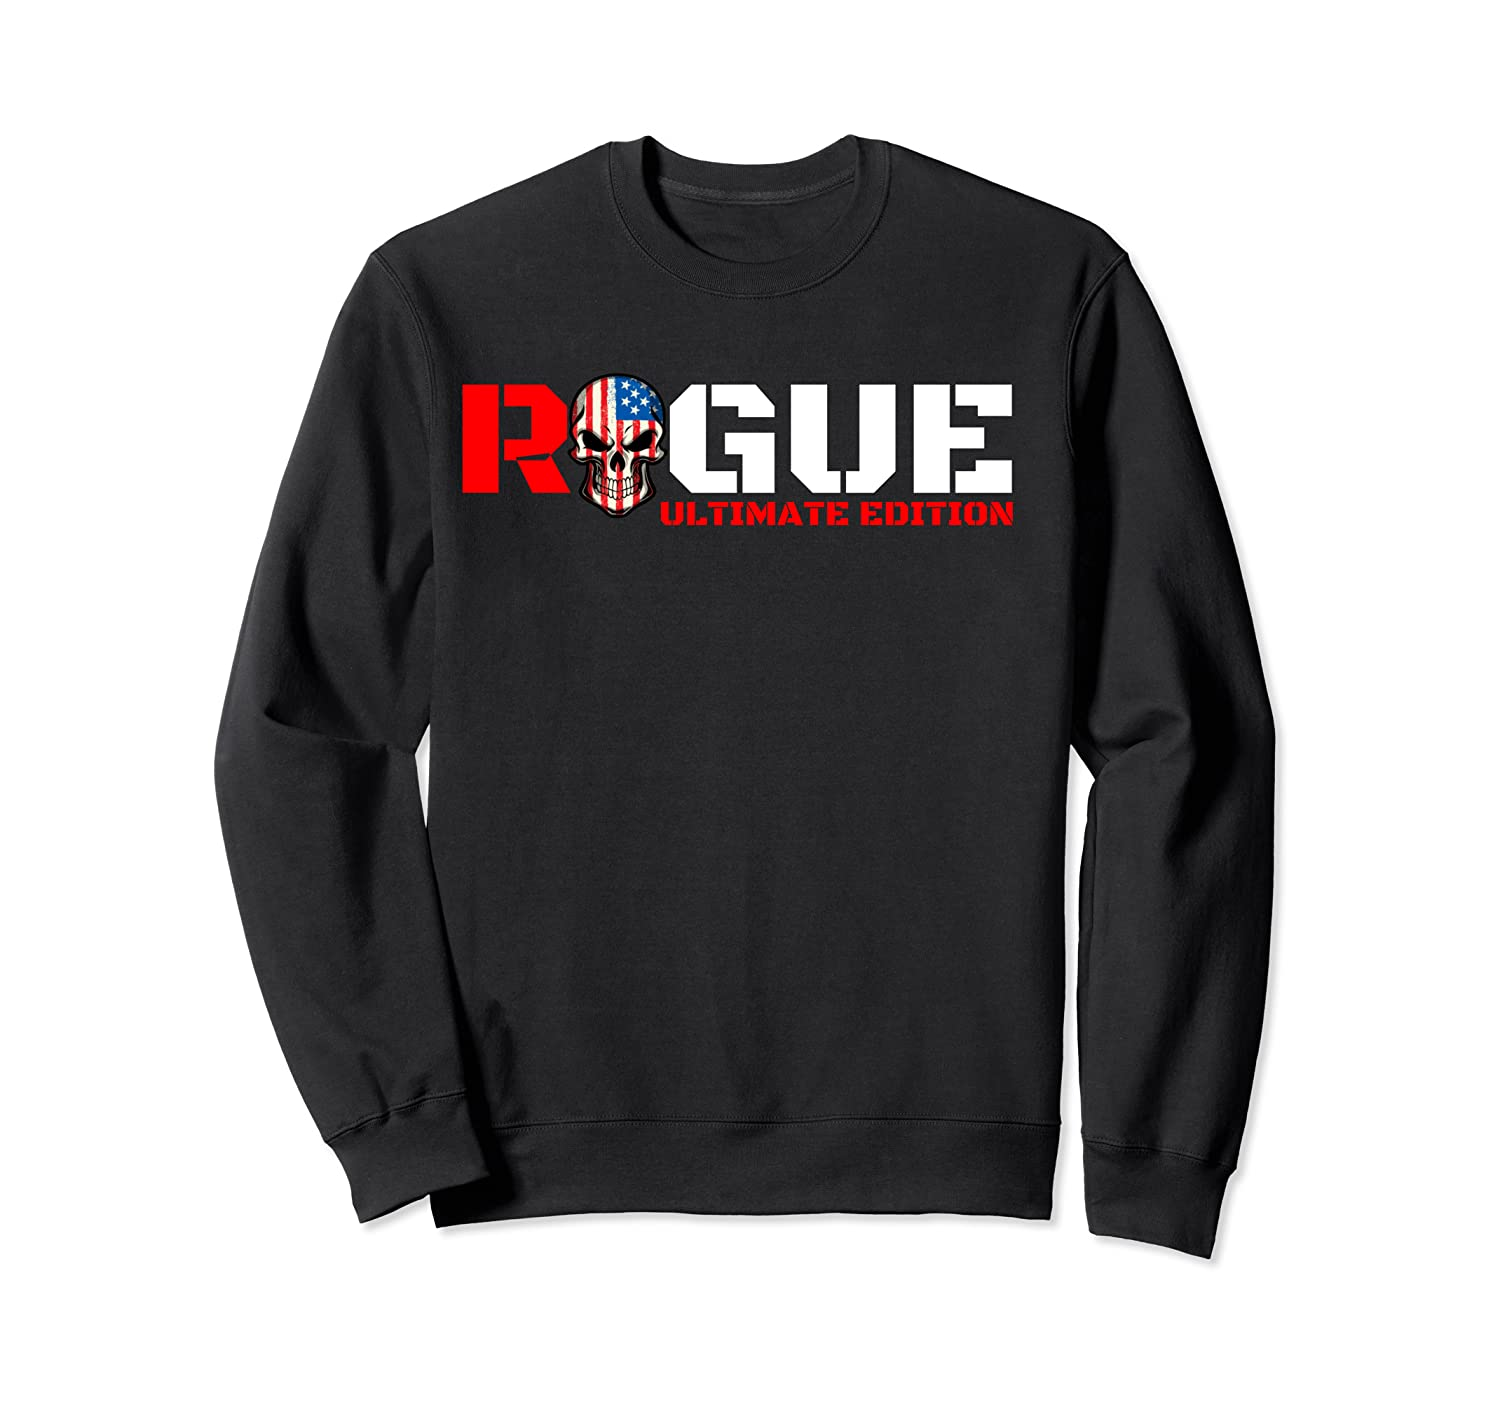 Rogue Cool Military Style Armed Forces Bad Boy Shirts Crewneck Sweater